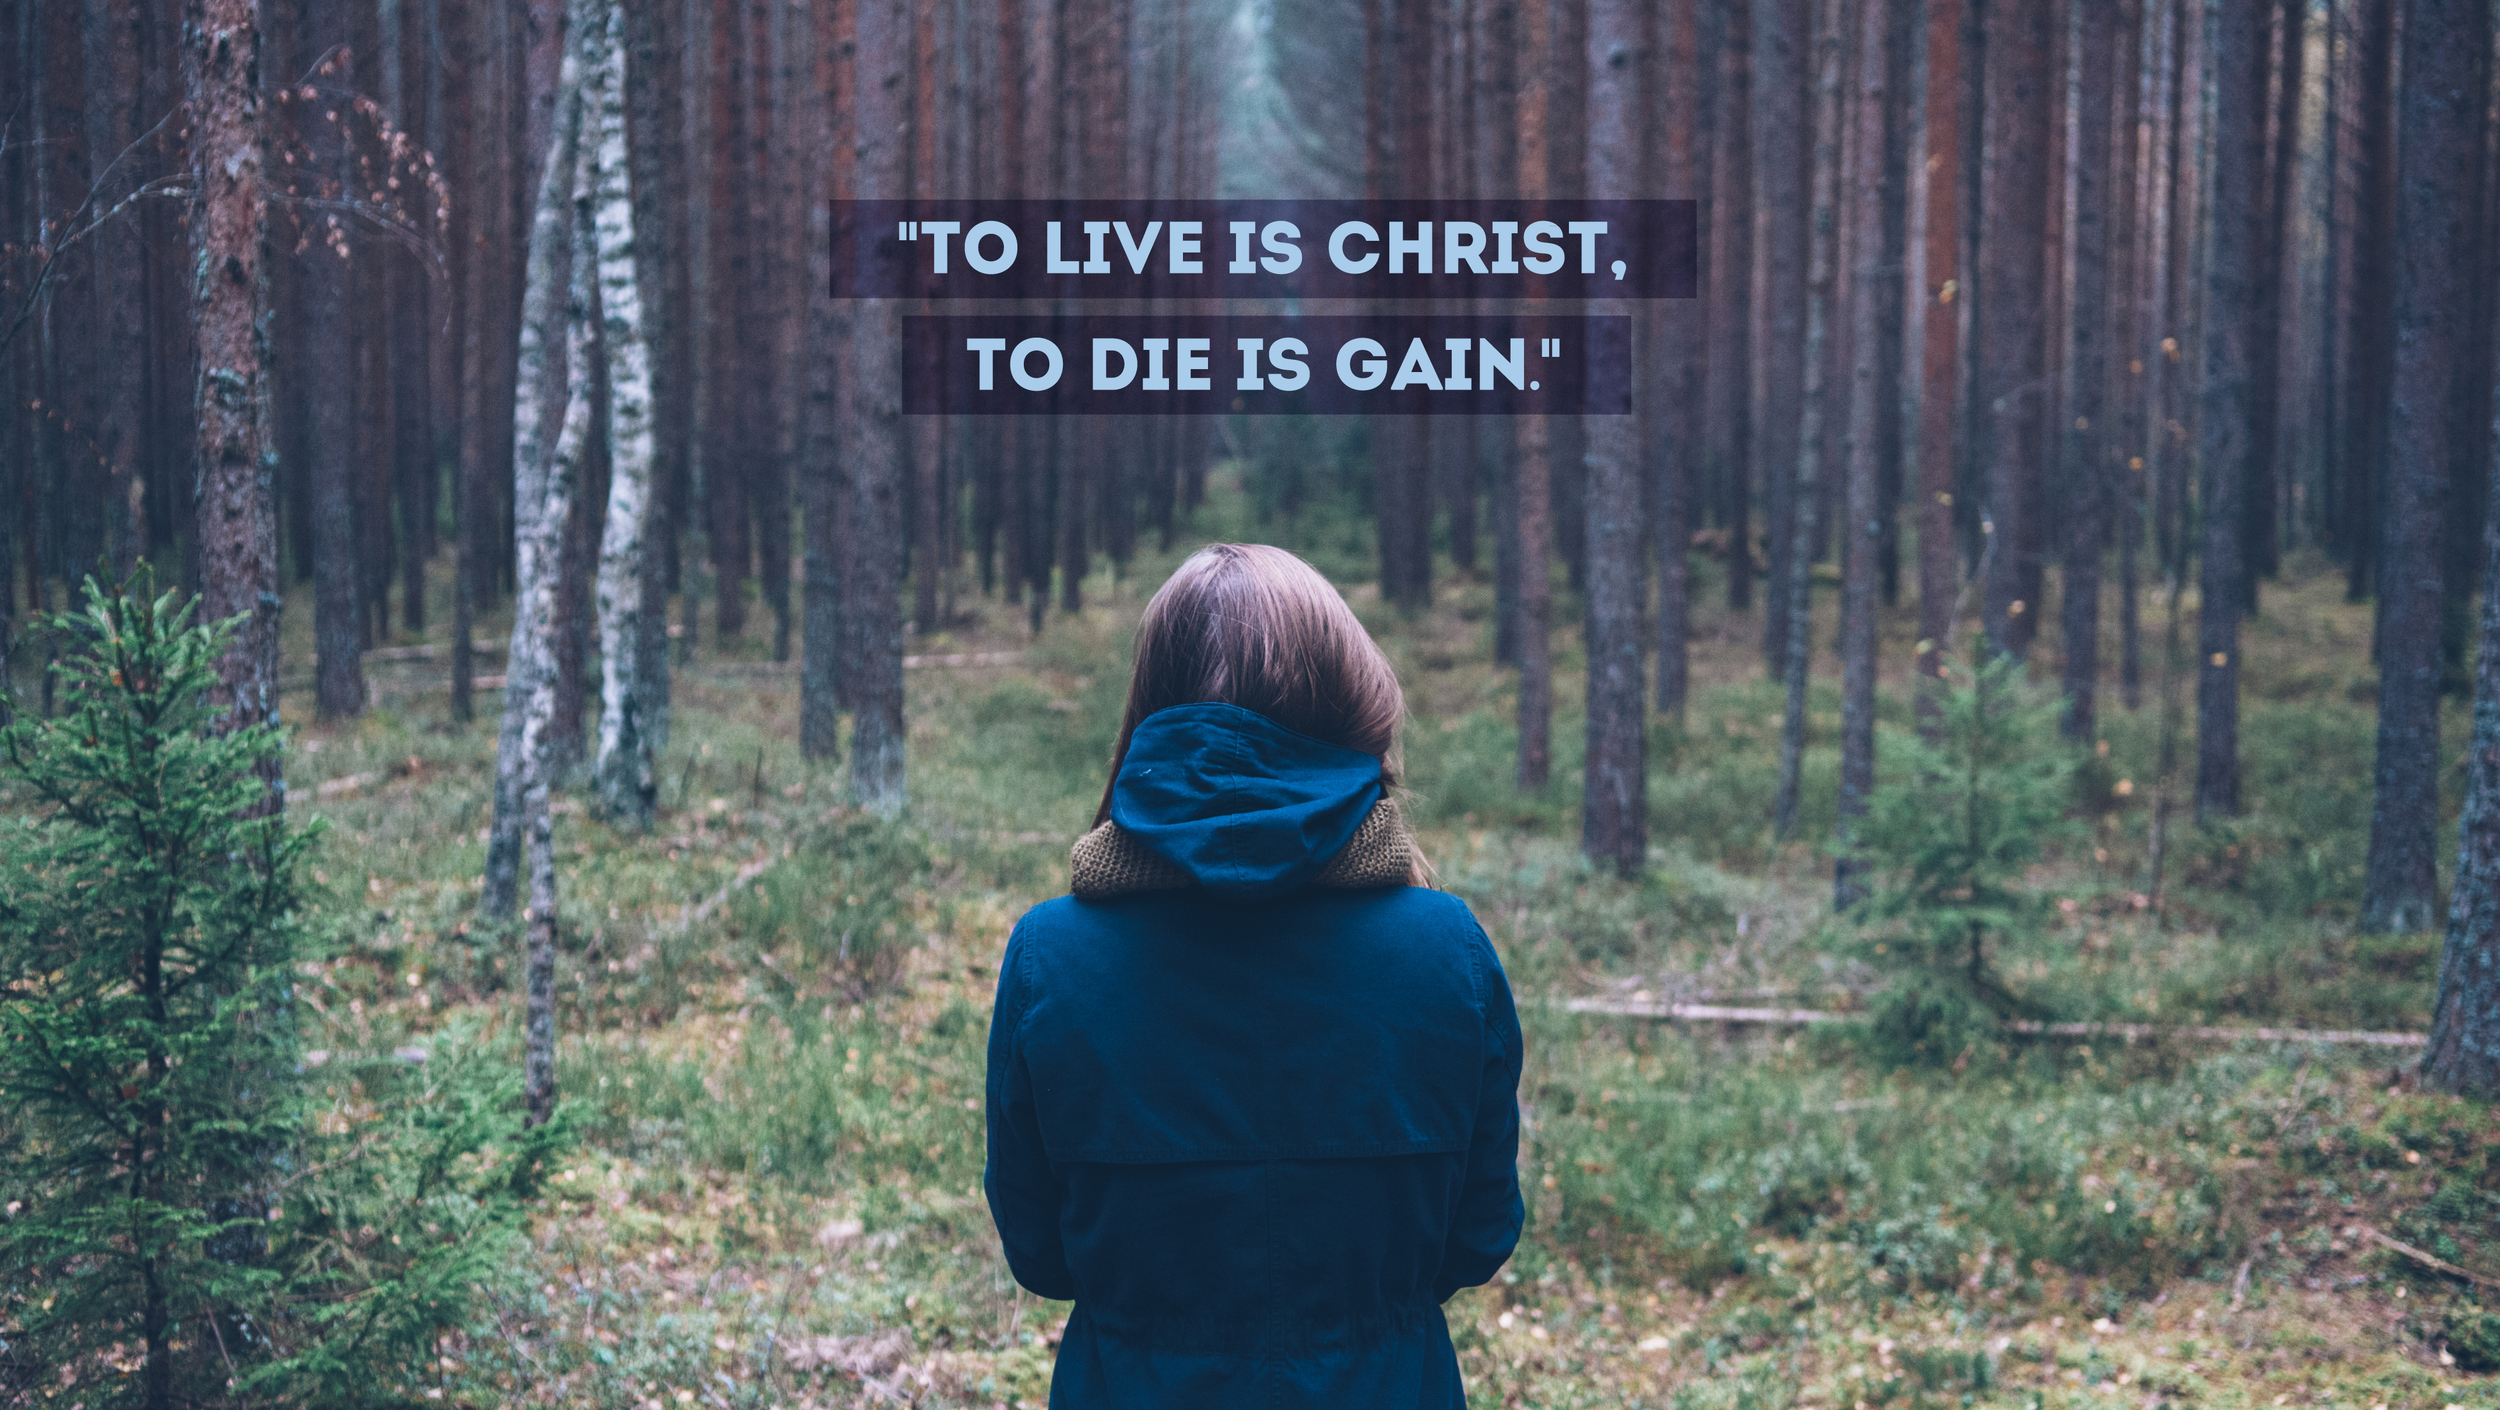 to-live-is-christ.jpg